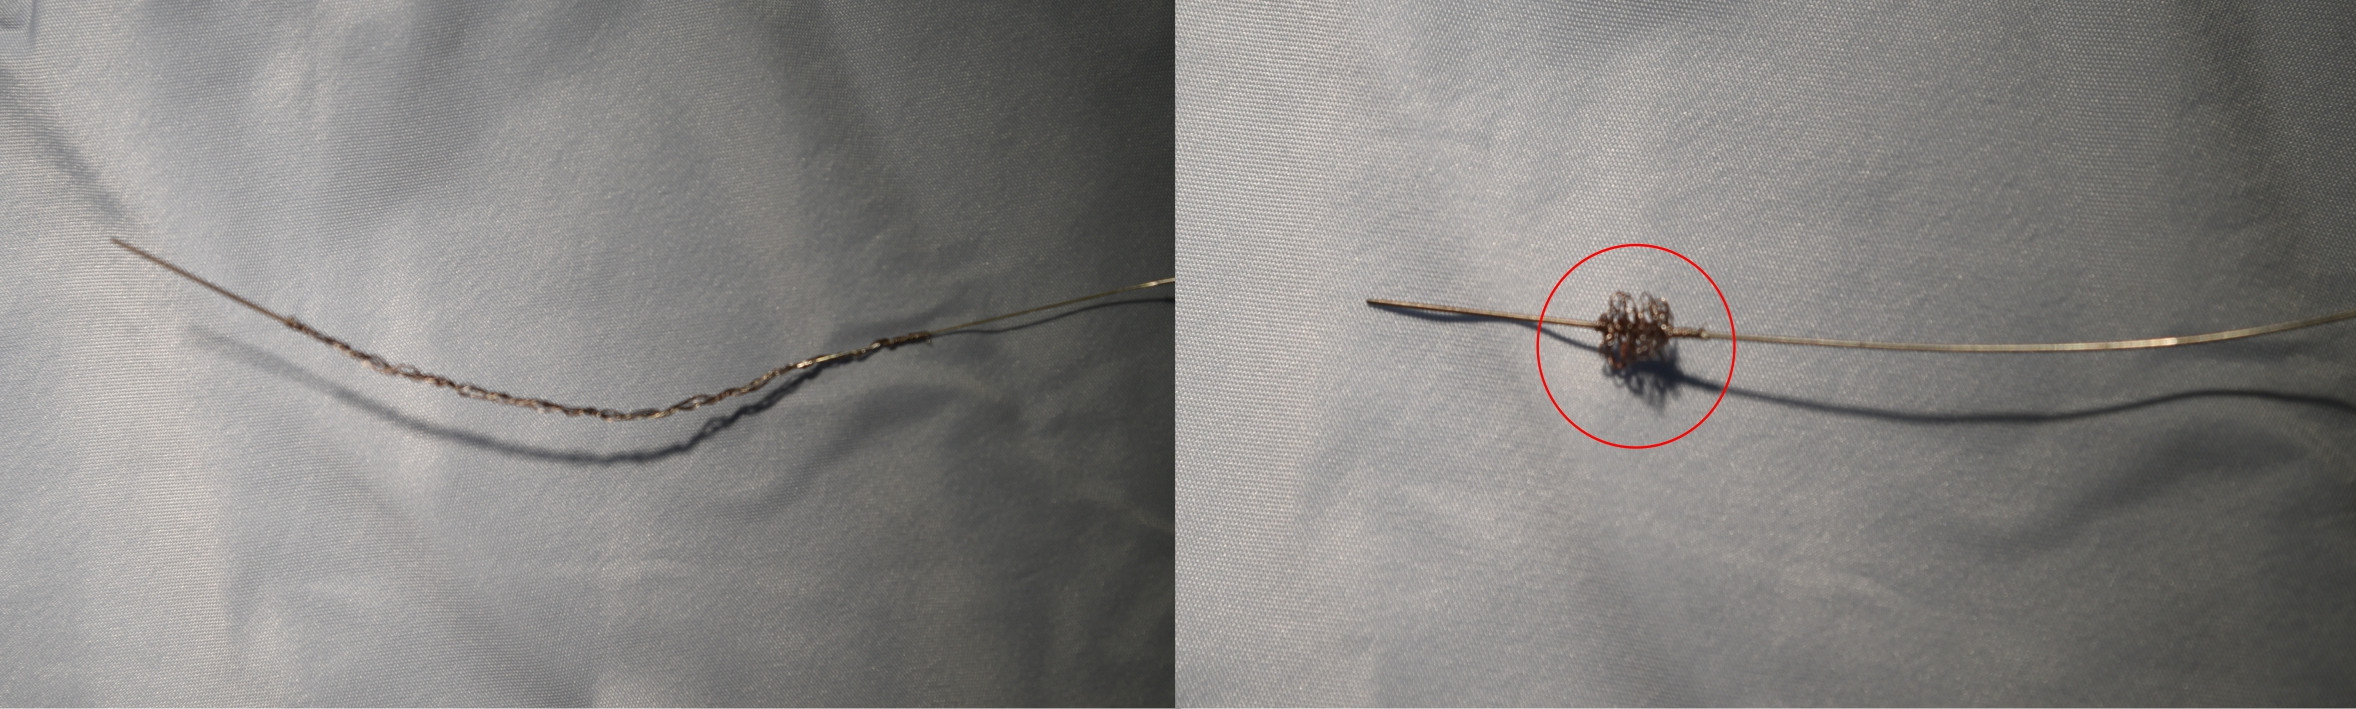 Najam - Pacing: Figure 2. An undeployed Liberator stylet (left) and a deployed Liberator stylet (right). Notice the lead locking mechanism highlighted by the red circle